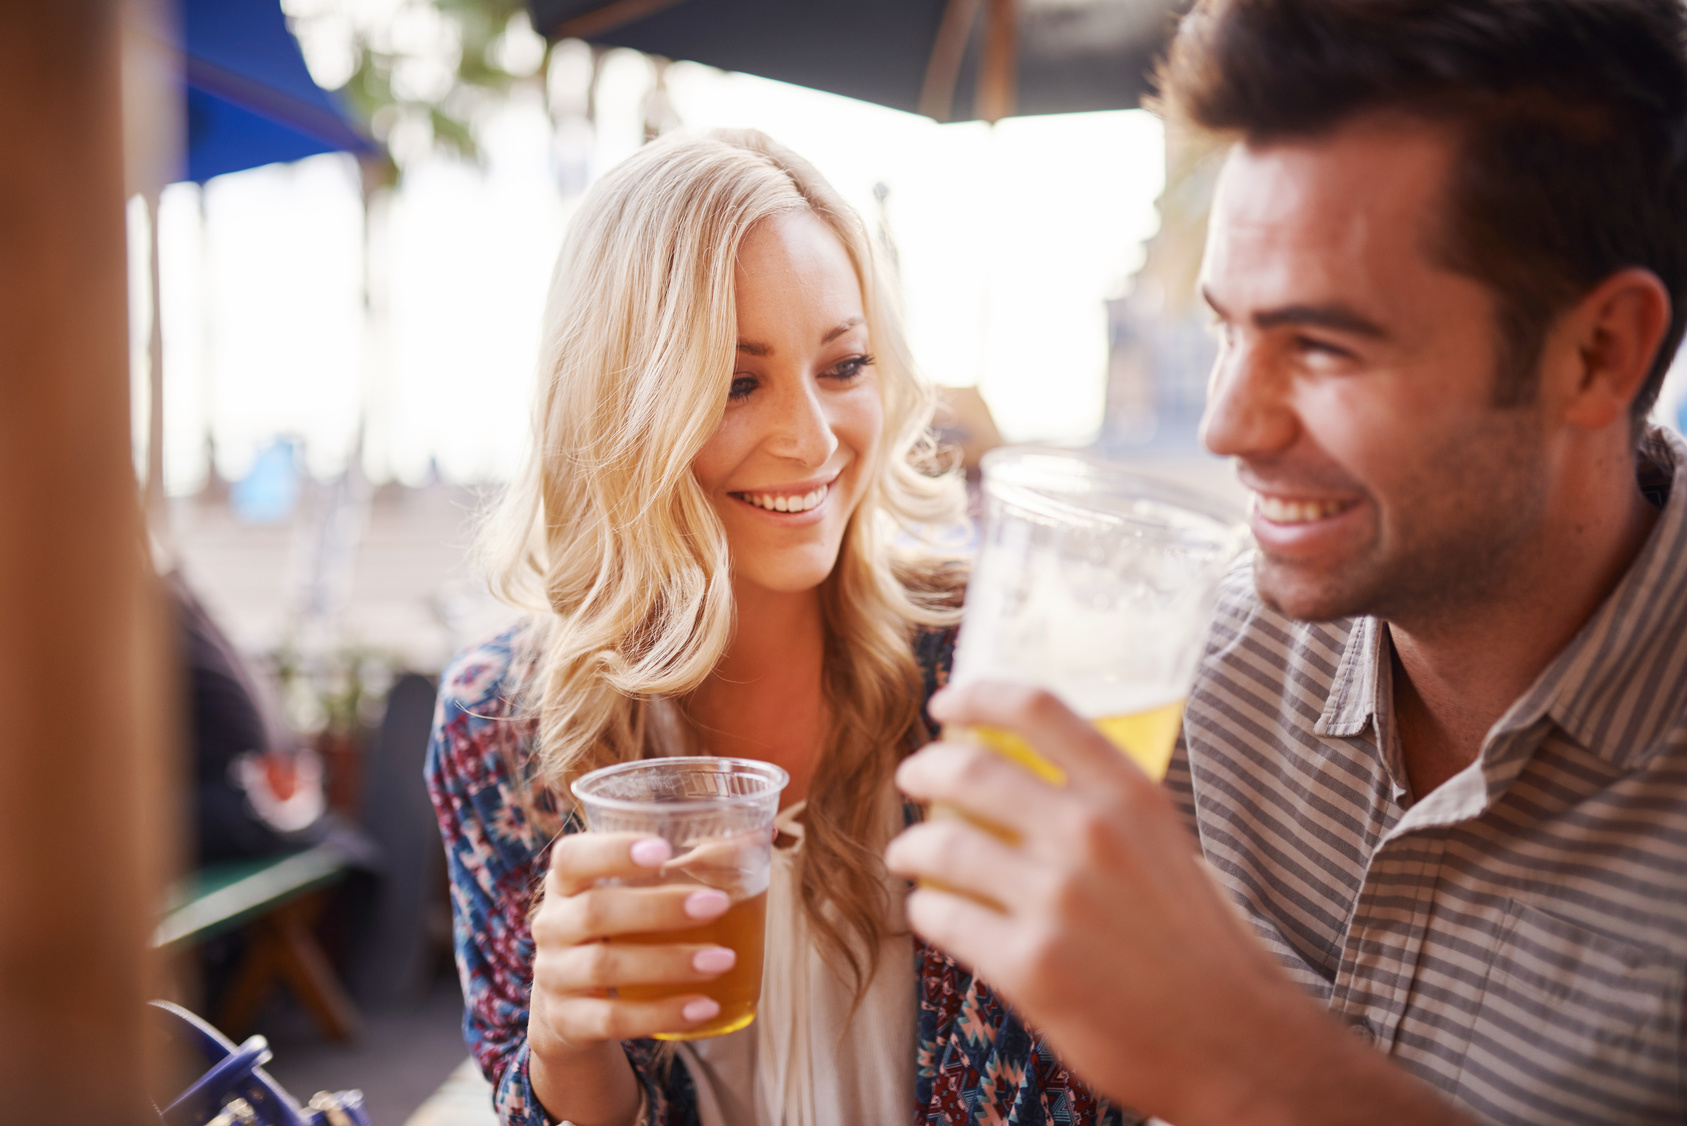 happy couple drinking beer together at outdoor pub or bar